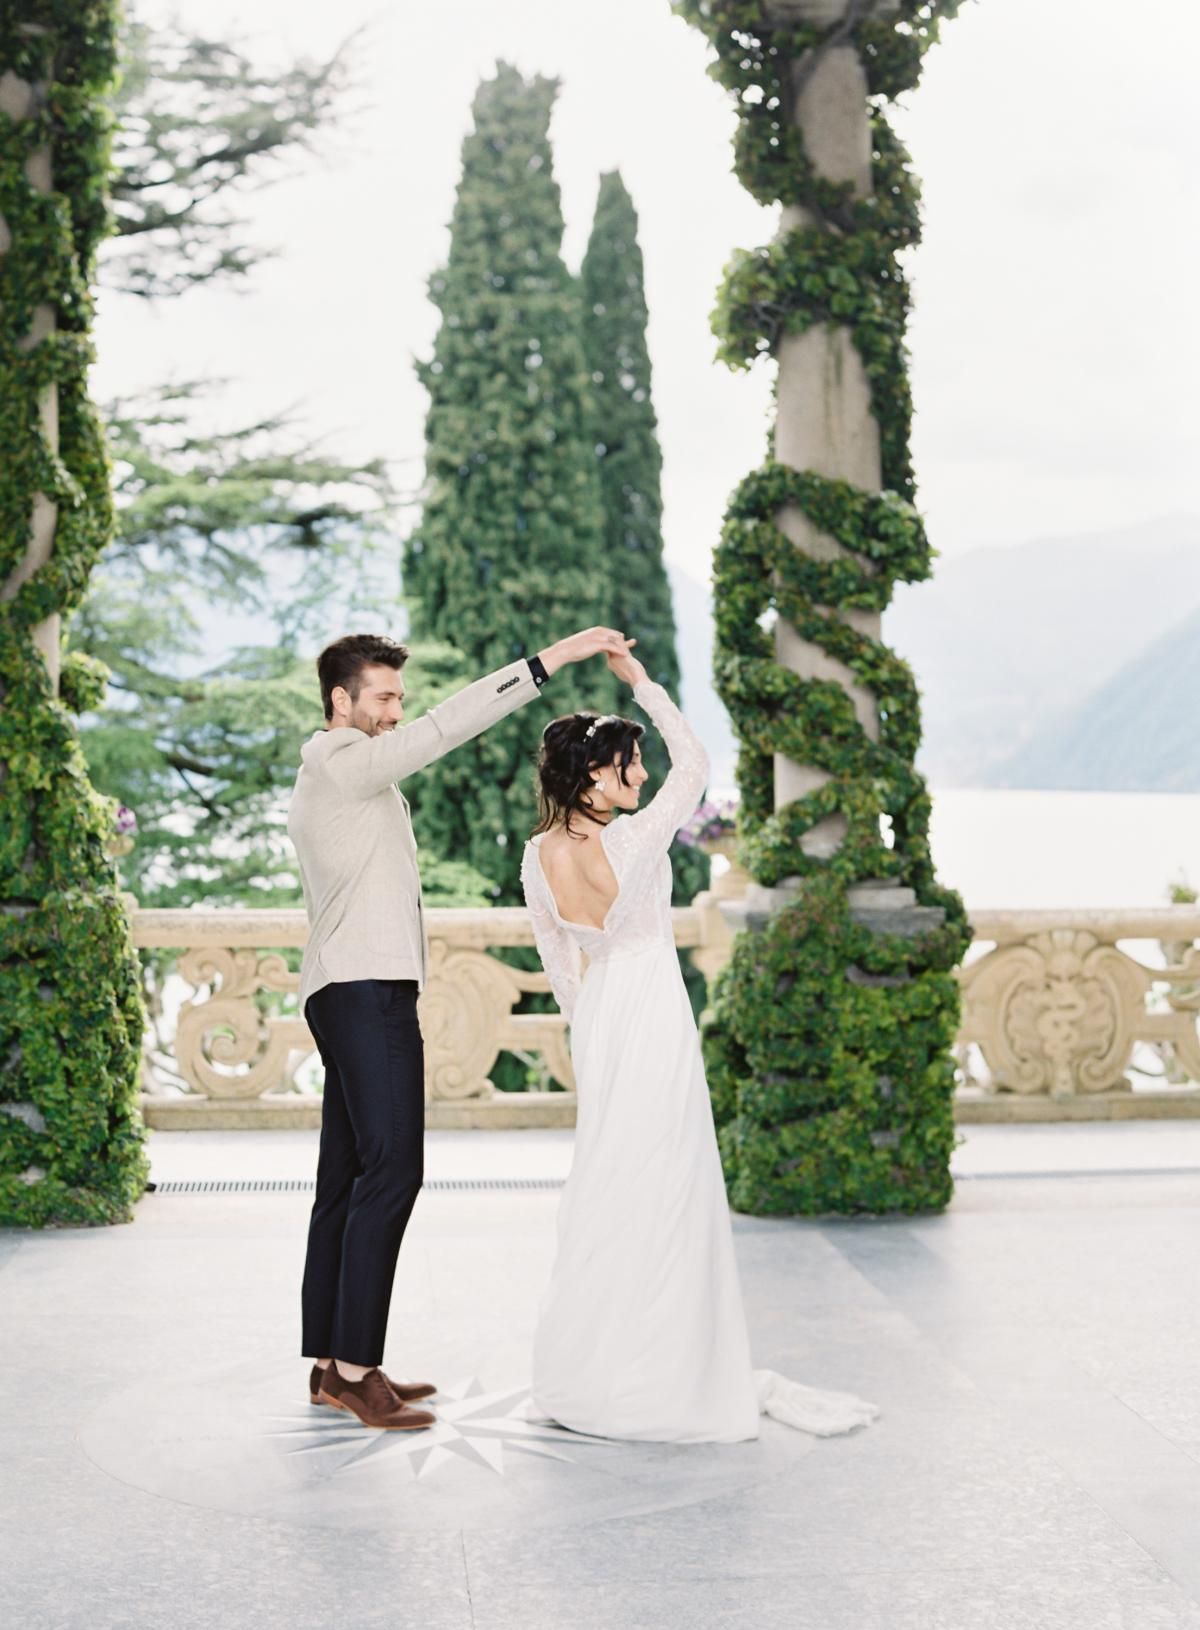 Lake Como Villa Del Balbianello Wedding Omalley Photographers 0019